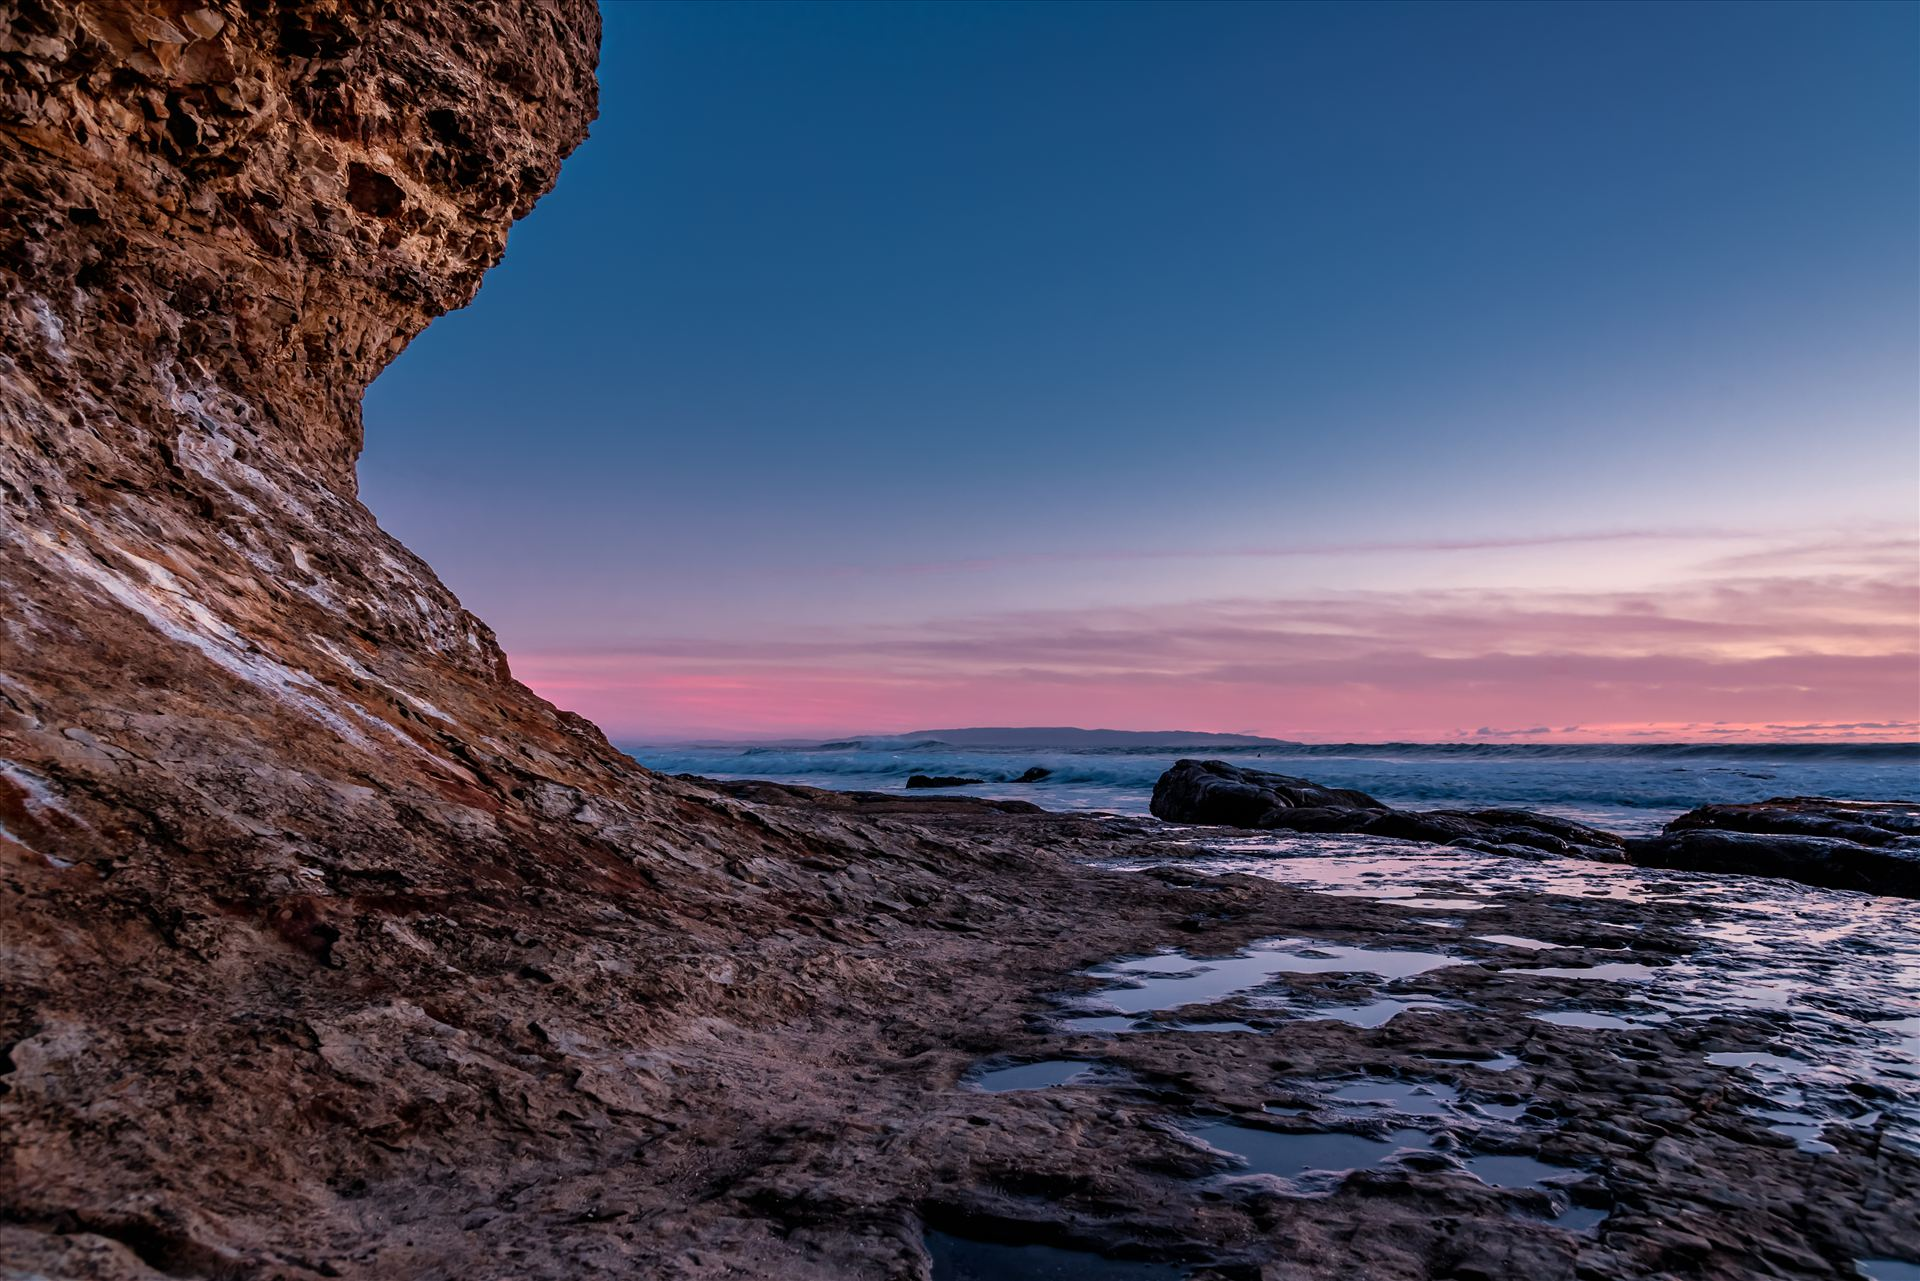 Shell Beach Cliff Pink Sunset.jpg -  by Sarah Williams